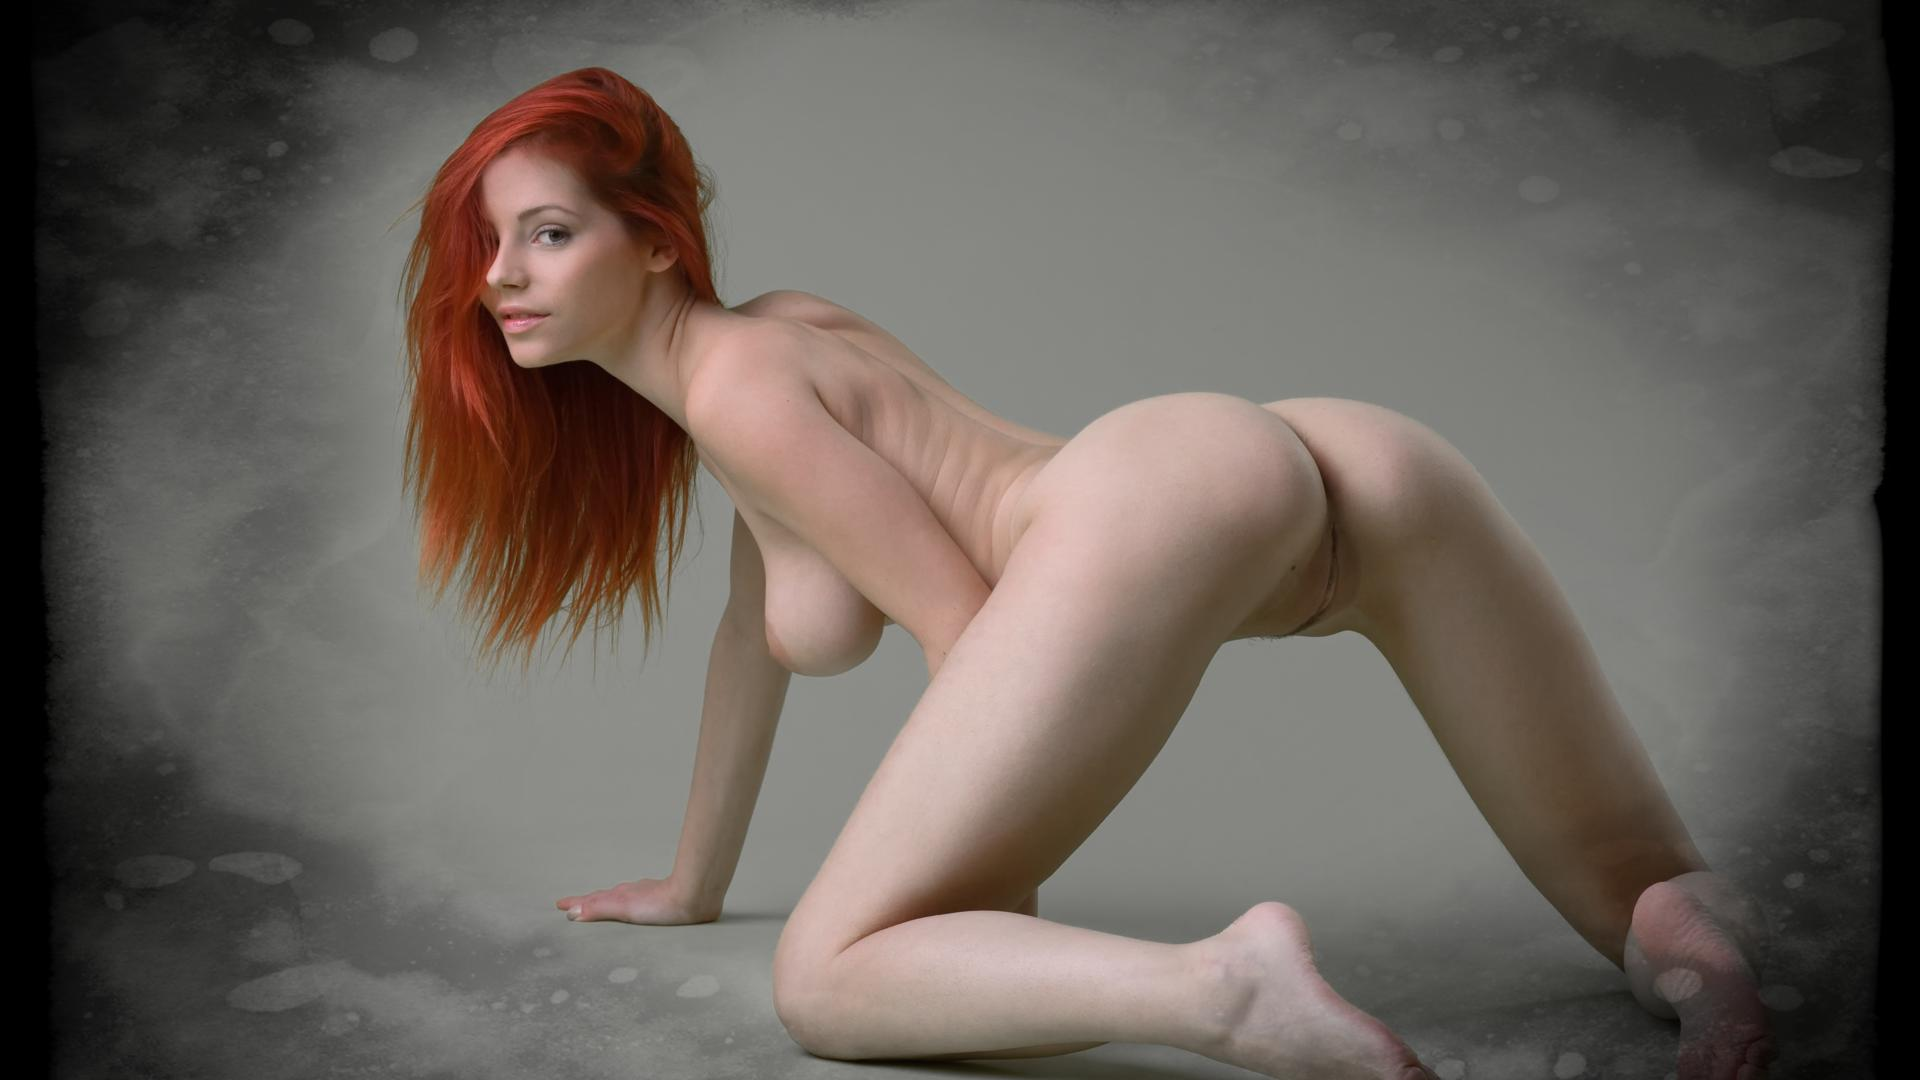 Danejones czech redhead penetrated by big thick cock